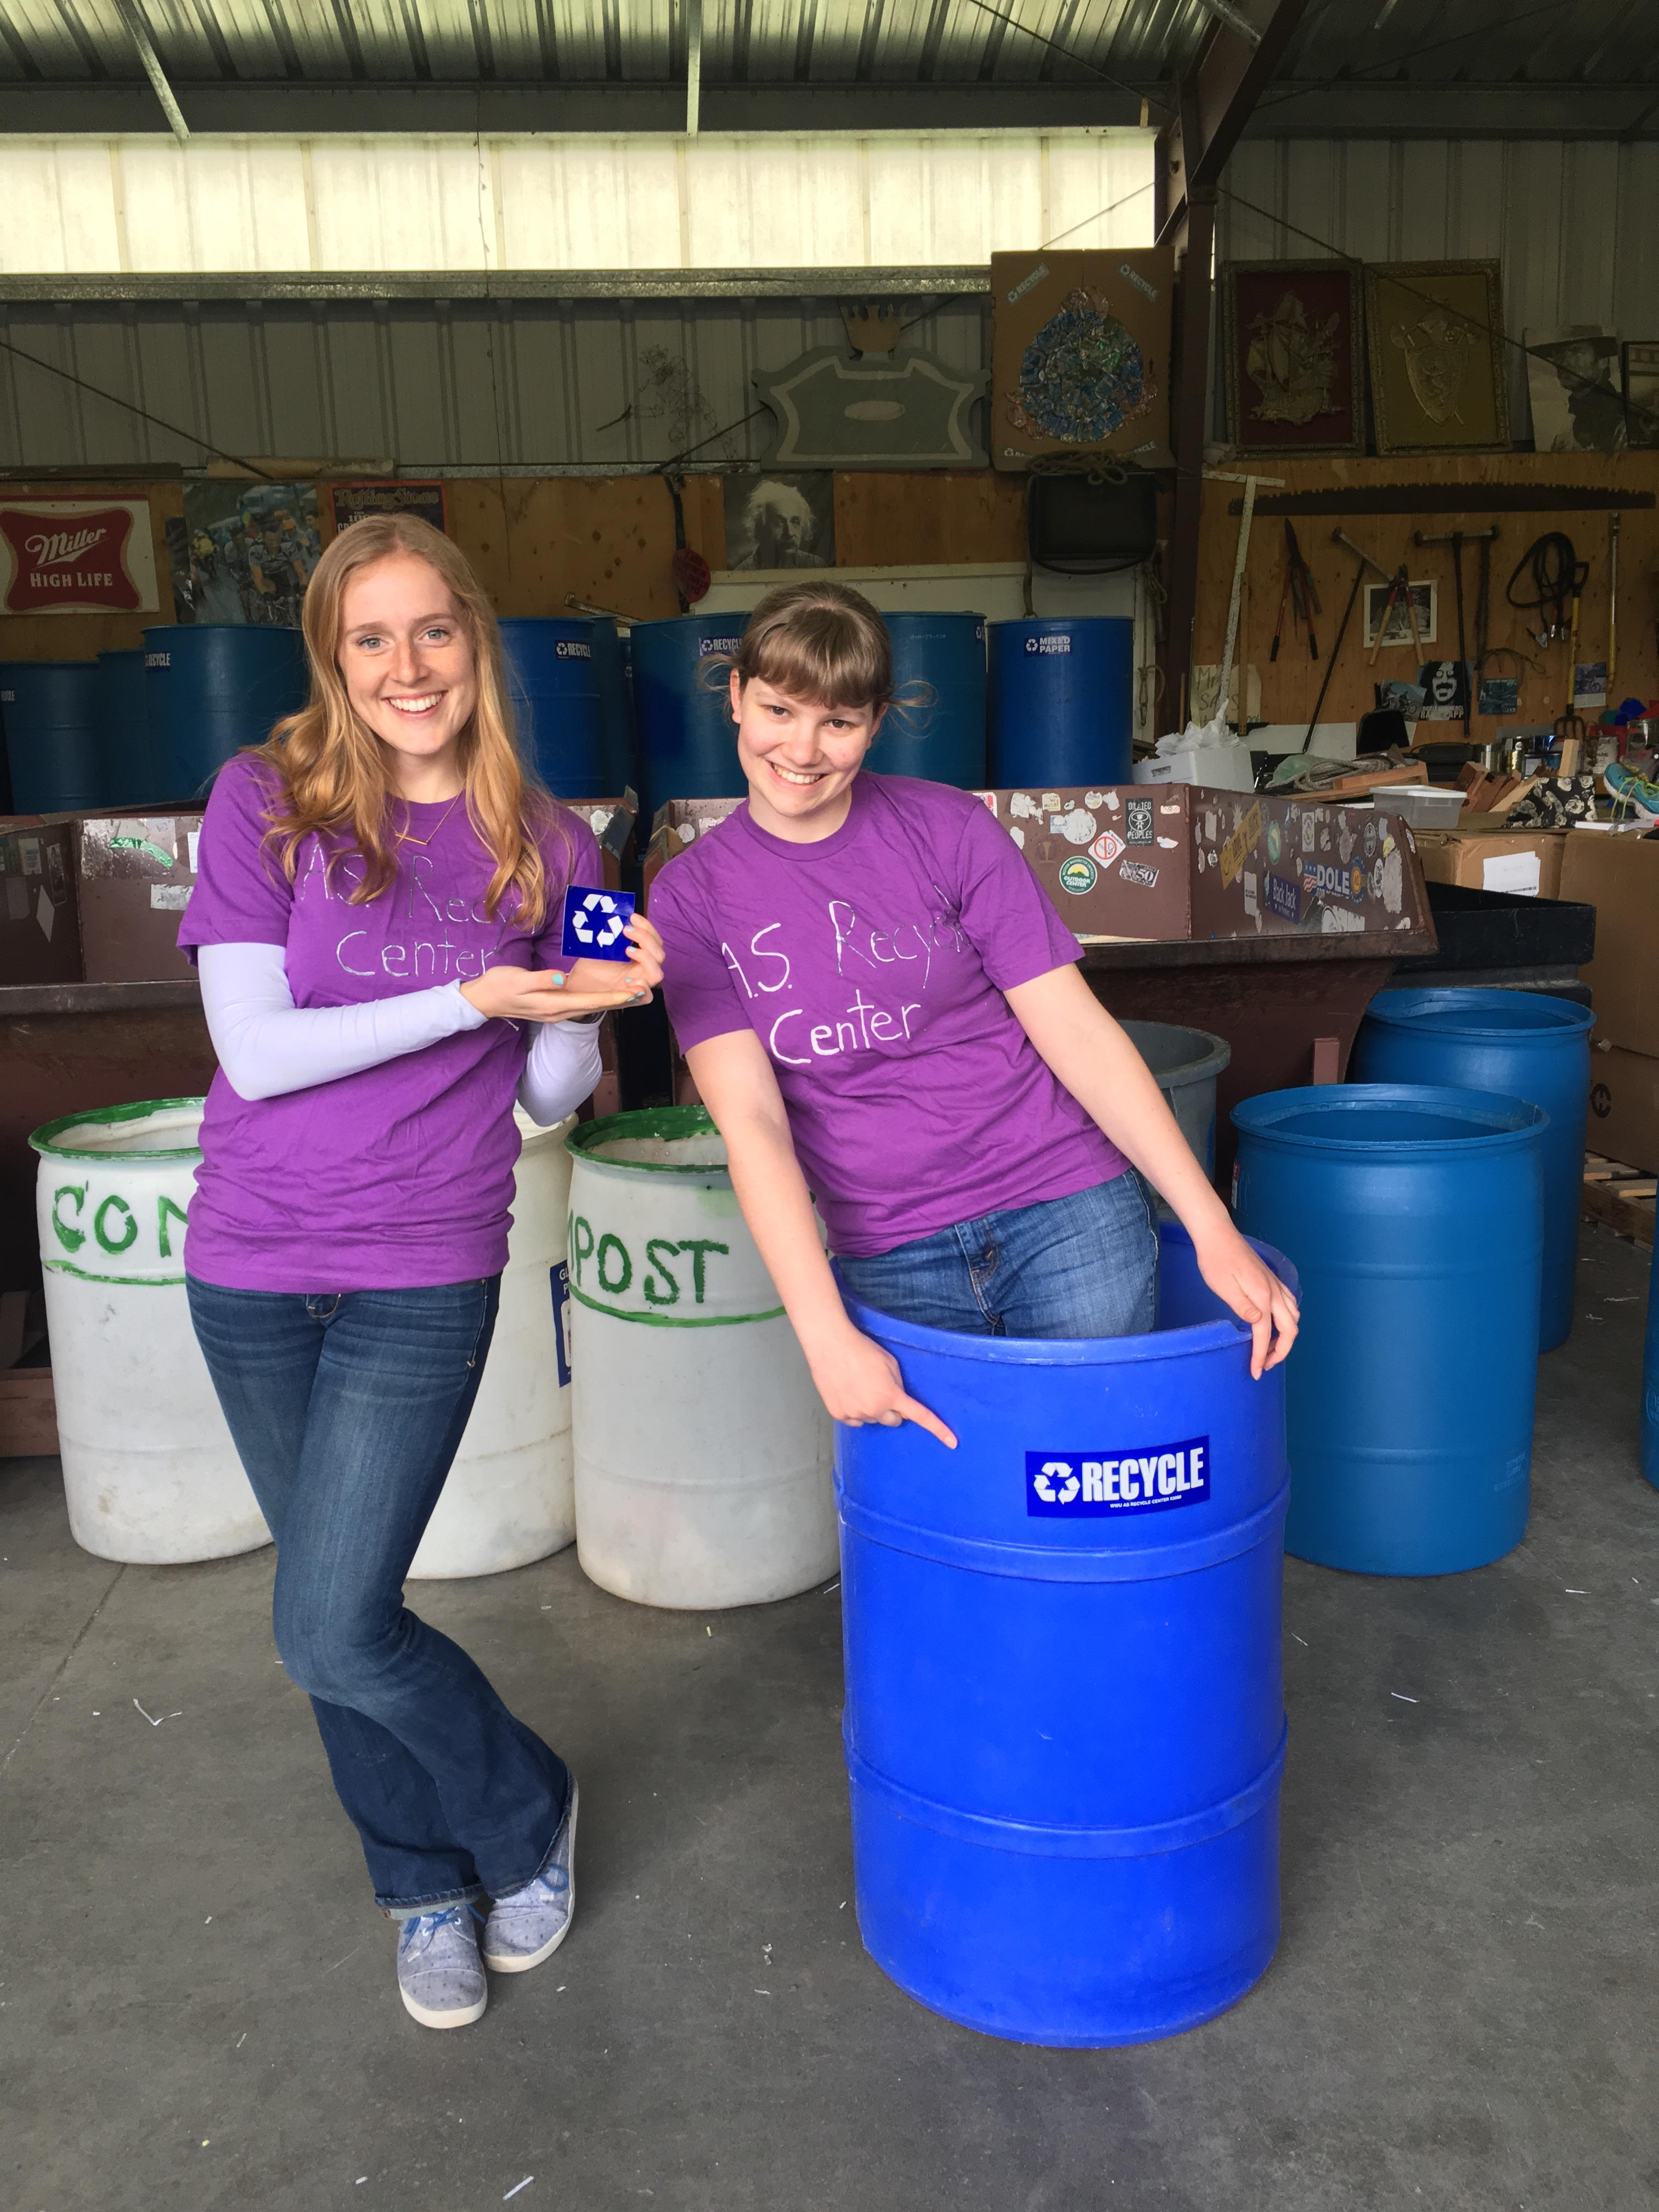 Recycling cuties behind two blue recycling barrels